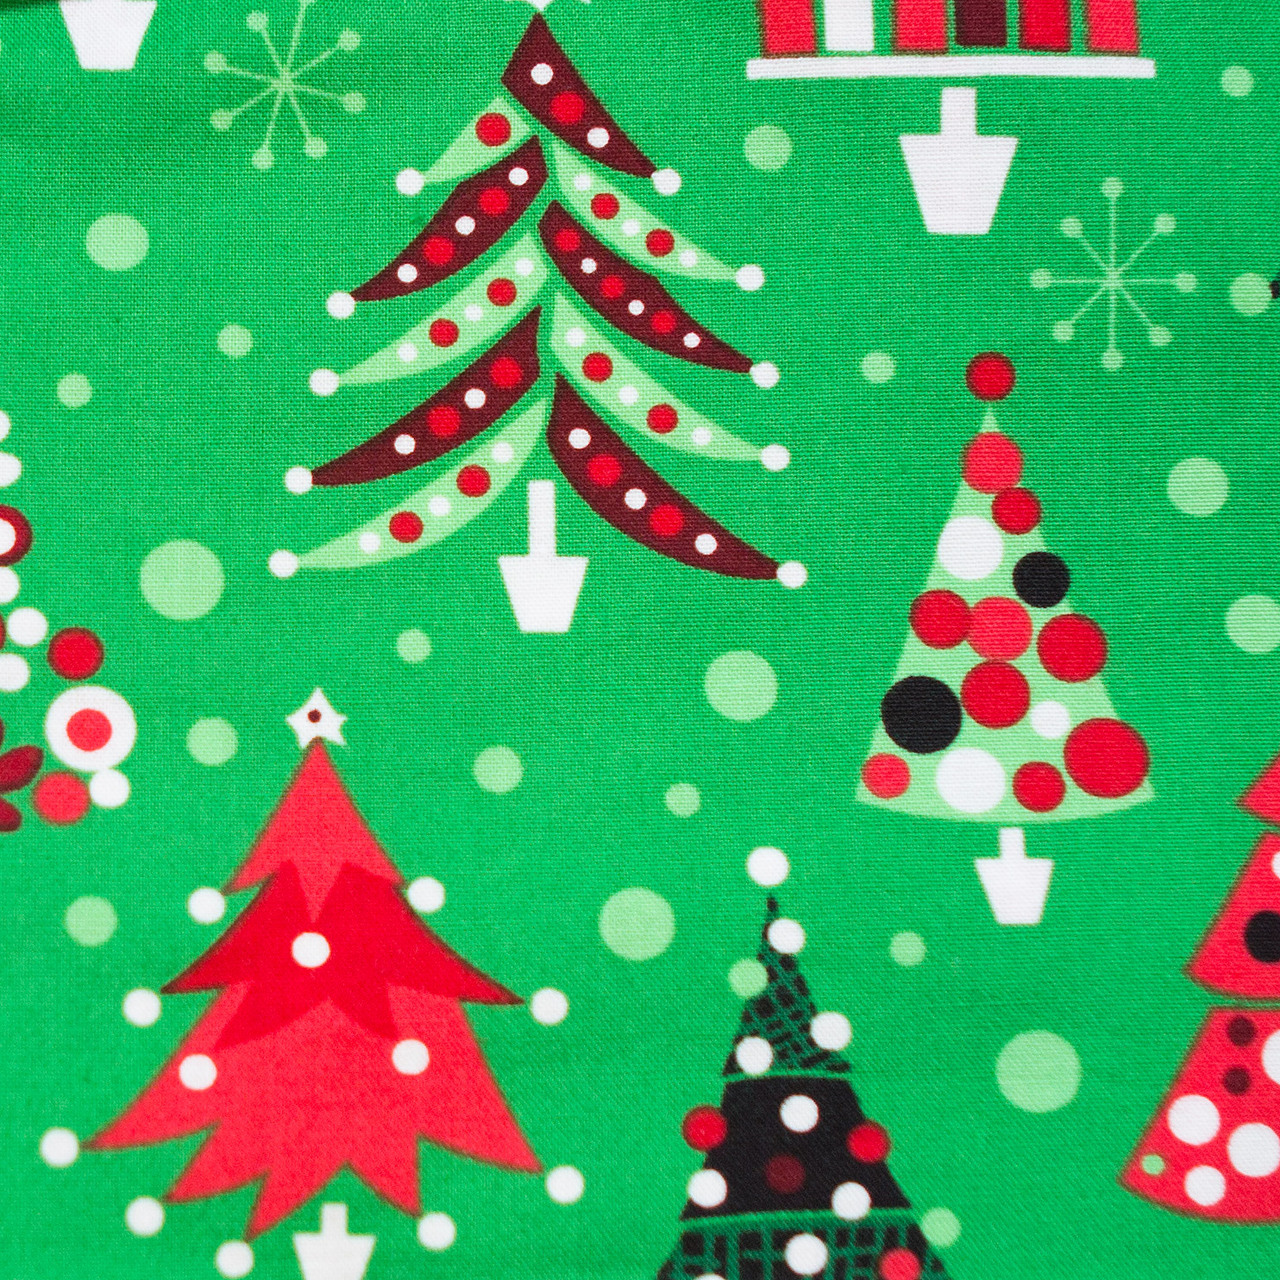 Twelve Days of Christmas print